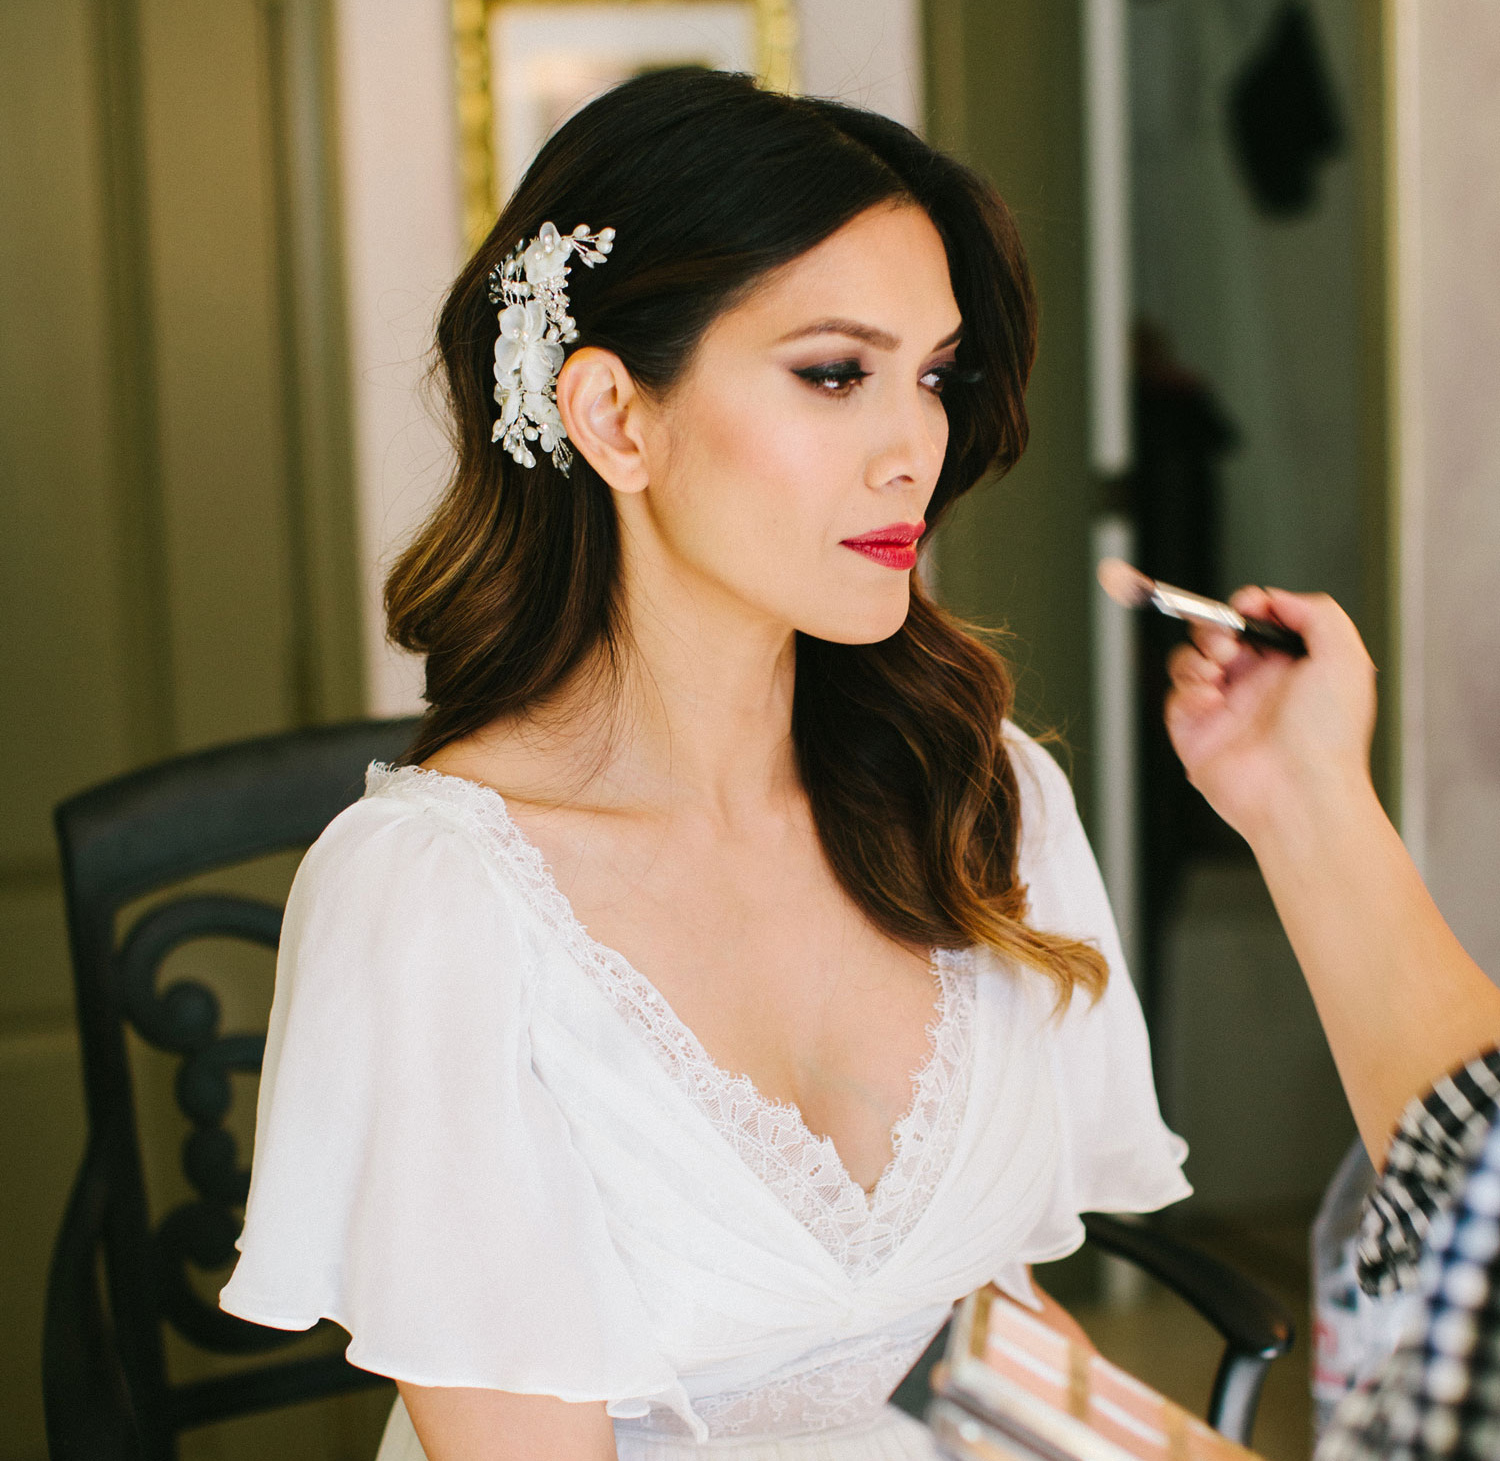 bride in white robe getting makeup done before wedding, how to make sure bridal makeup lasts throughout the day